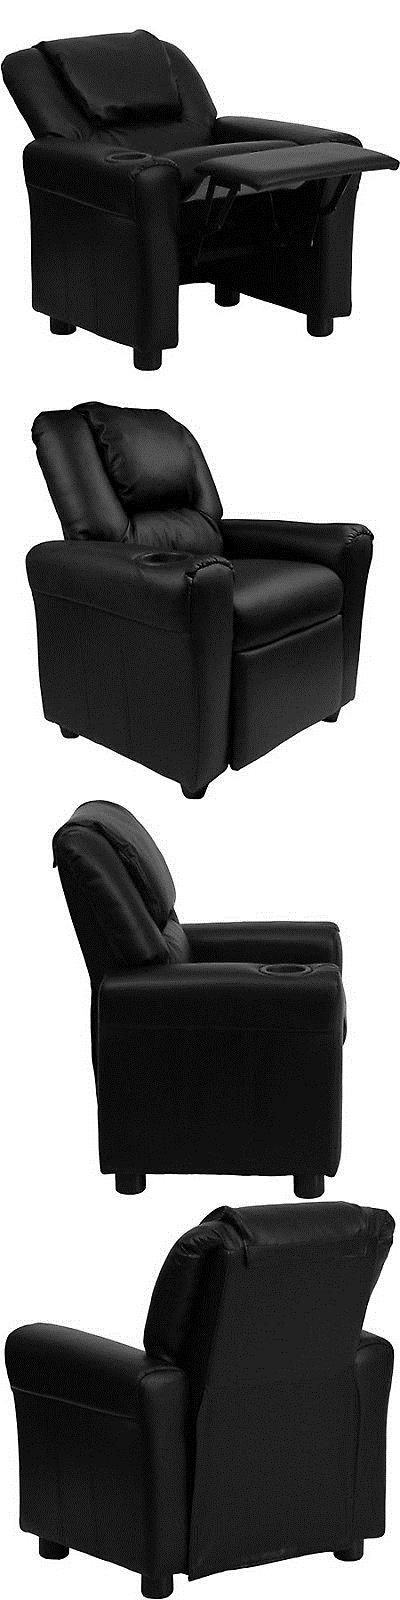 Sofas and Armchairs 134648: Kids Recliner With Cup Holder And Headrest Toddler Padded Armchair Black Vinyl New -> BUY IT NOW ONLY: $94.16 on eBay!